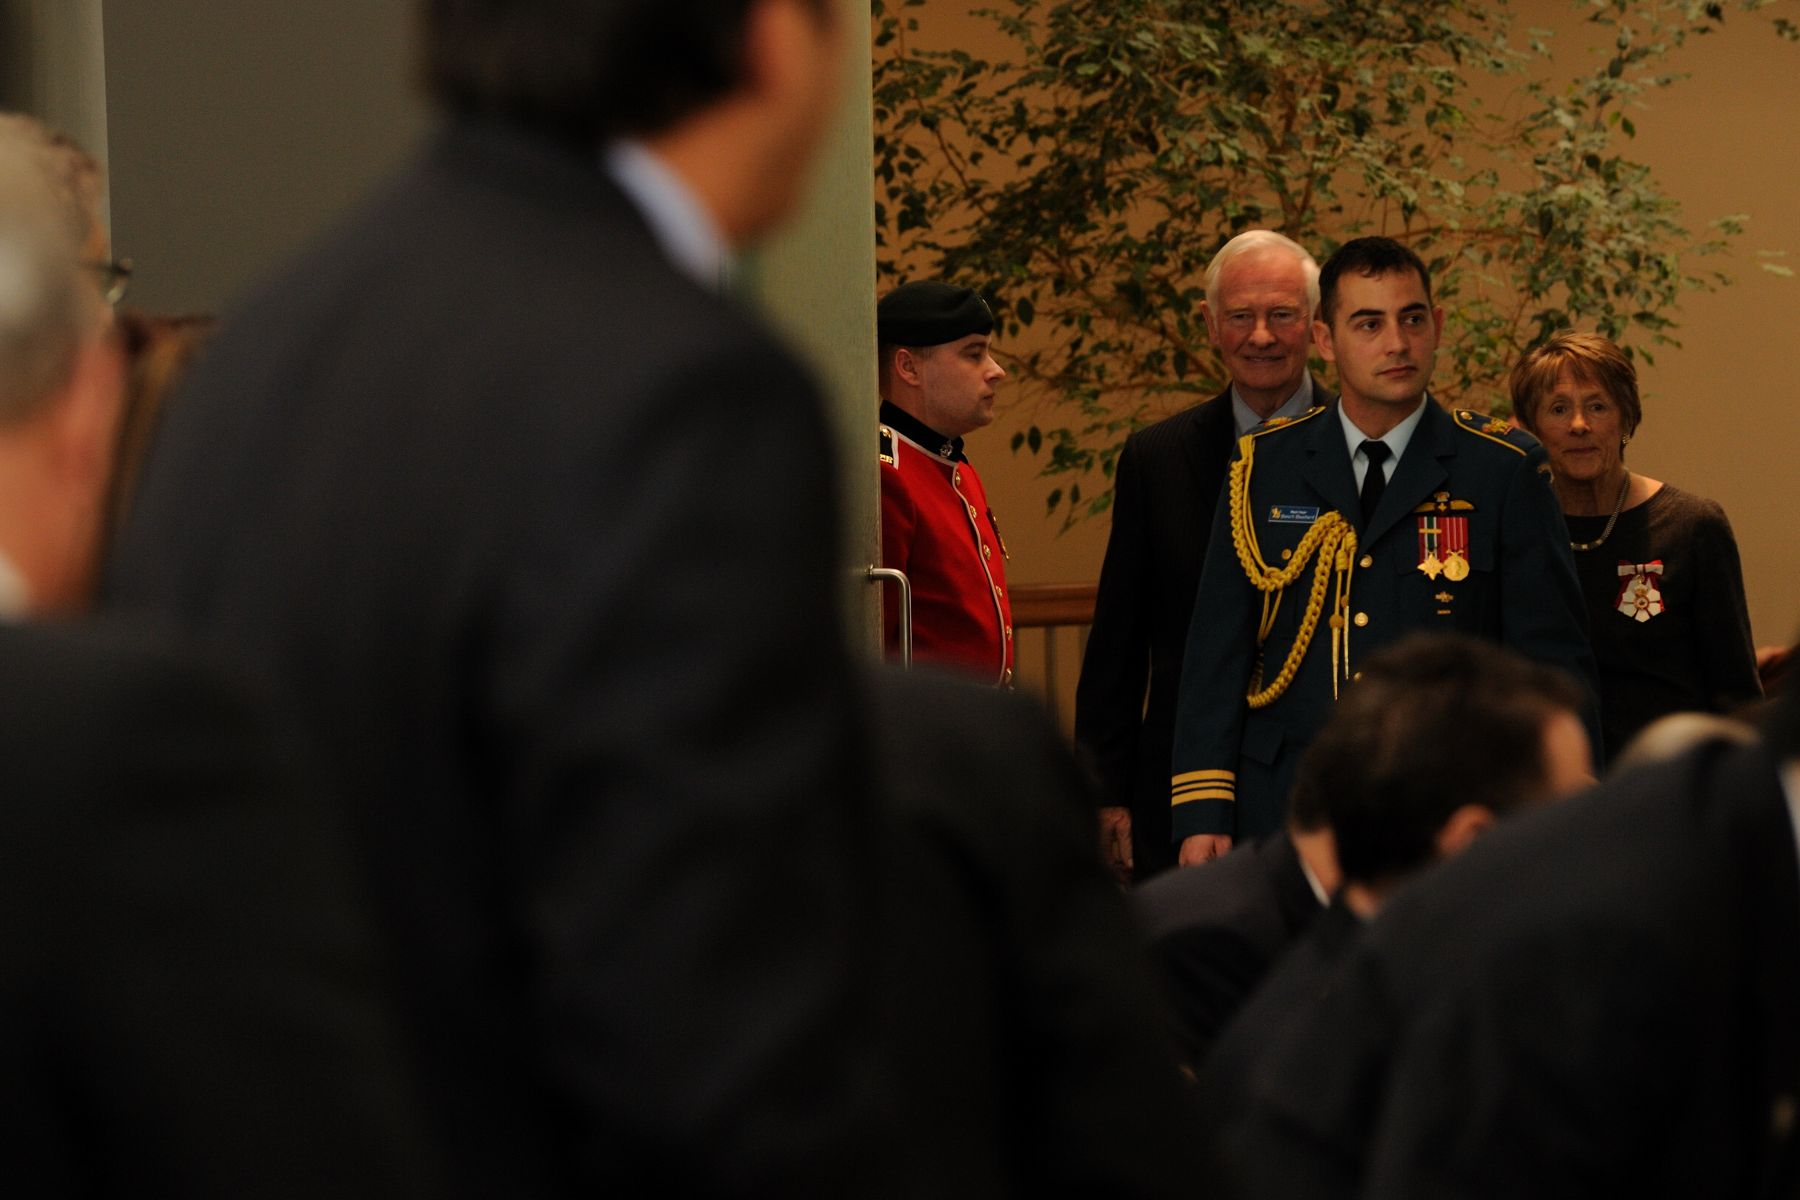 In the afternoon of February 8, 2011, the Governor General presented two Stars of Courage and 9 Medals of Bravery, in his first Decorations for Bravery ceremony at the Citadelle of Quebec.